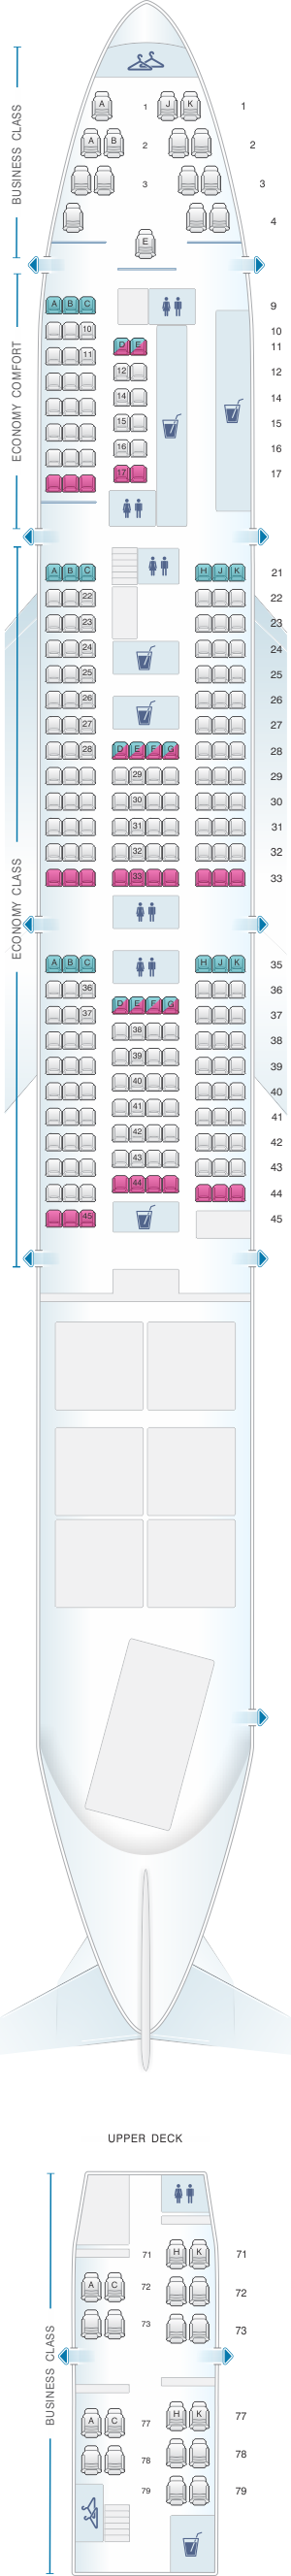 Seat map for KLM Boeing B747 400 Combi New World Business Class